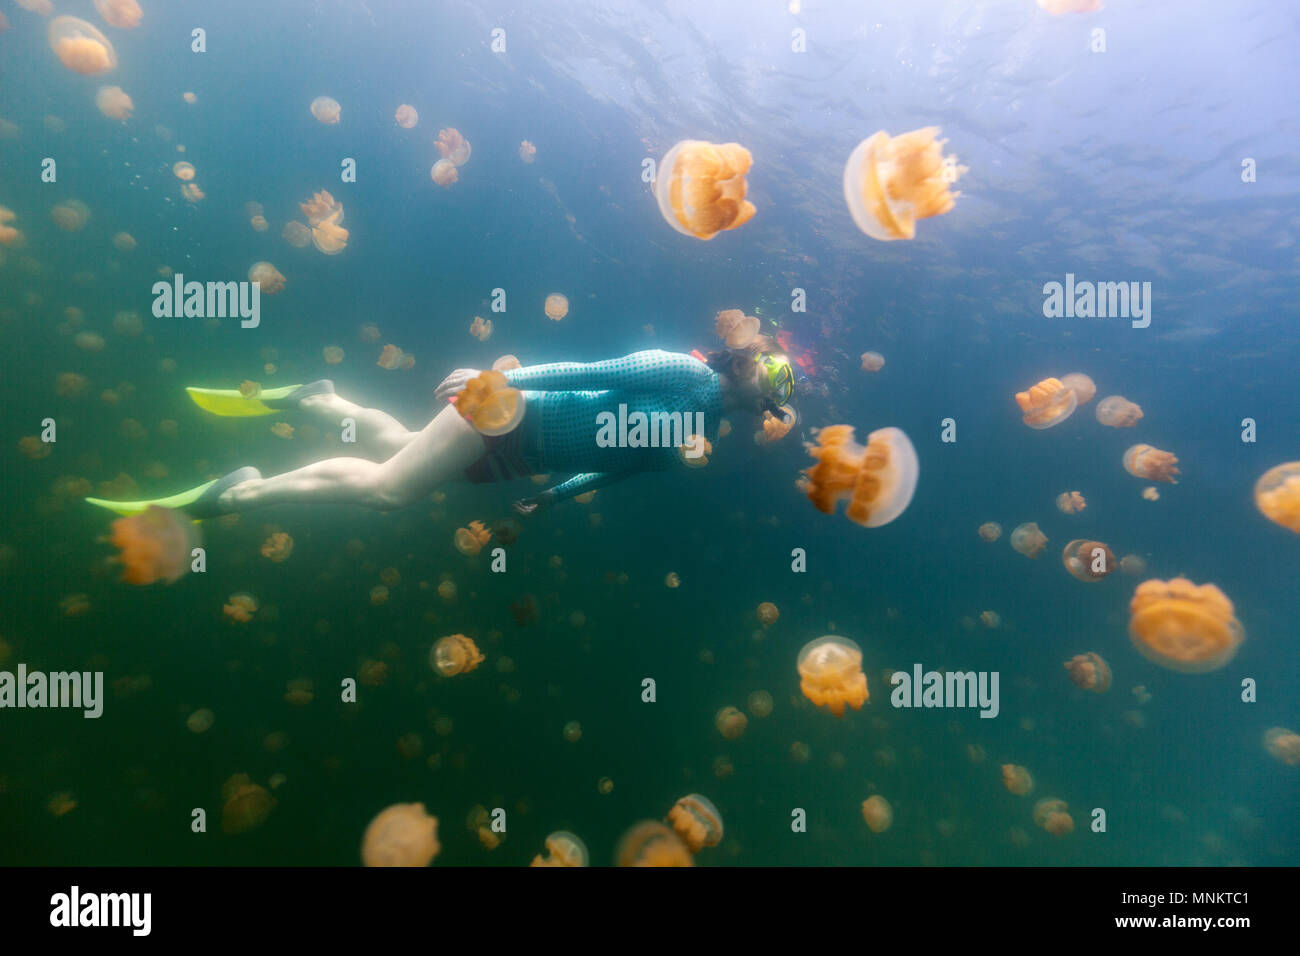 Underwater photo of tourist woman snorkeling with endemic golden jellyfish in lake at Palau Stock Photo